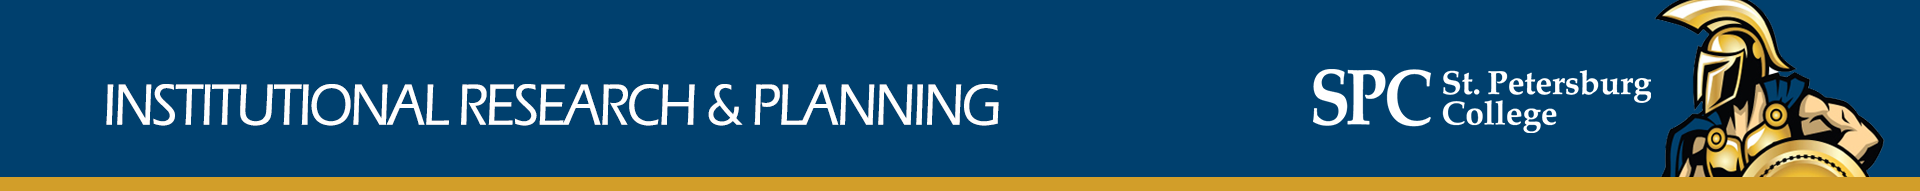 spc banner institutional research and planning